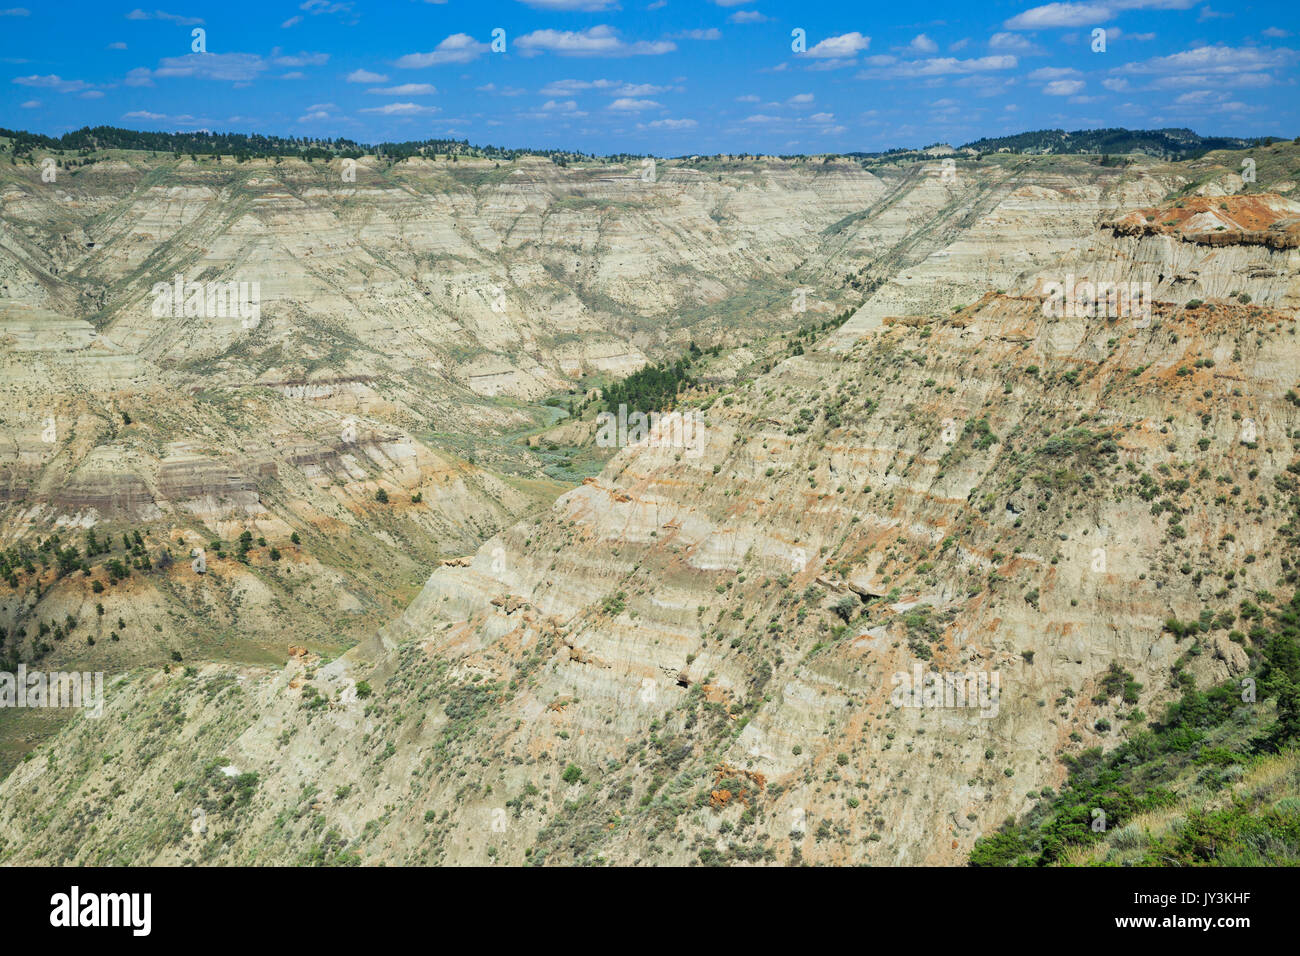 badlands in the upper missouri river breaks national monument near winifred, montana Stock Photo